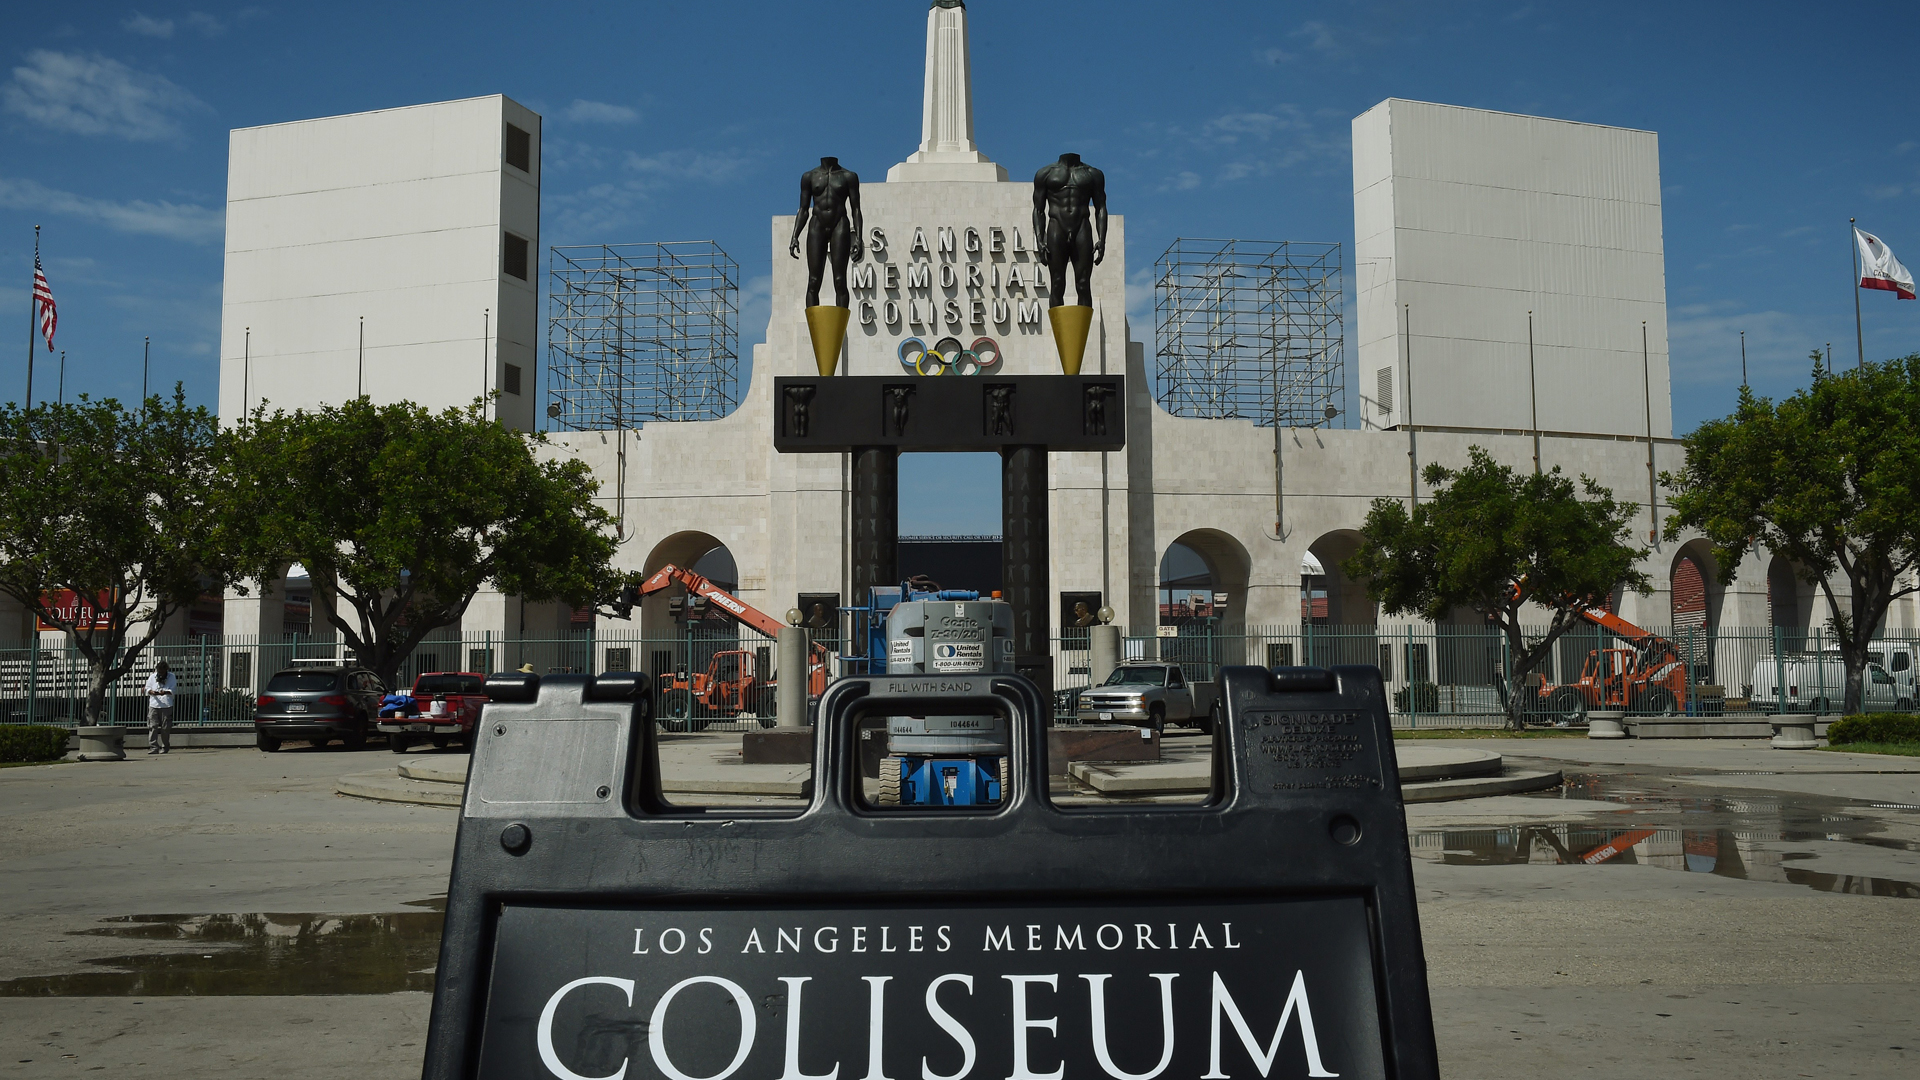 The Los Angeles Memorial Coliseum is seen on Aug. 26, 2015, in Los Angeles. (Credit: Mark Ralston/AFP/Getty Images)